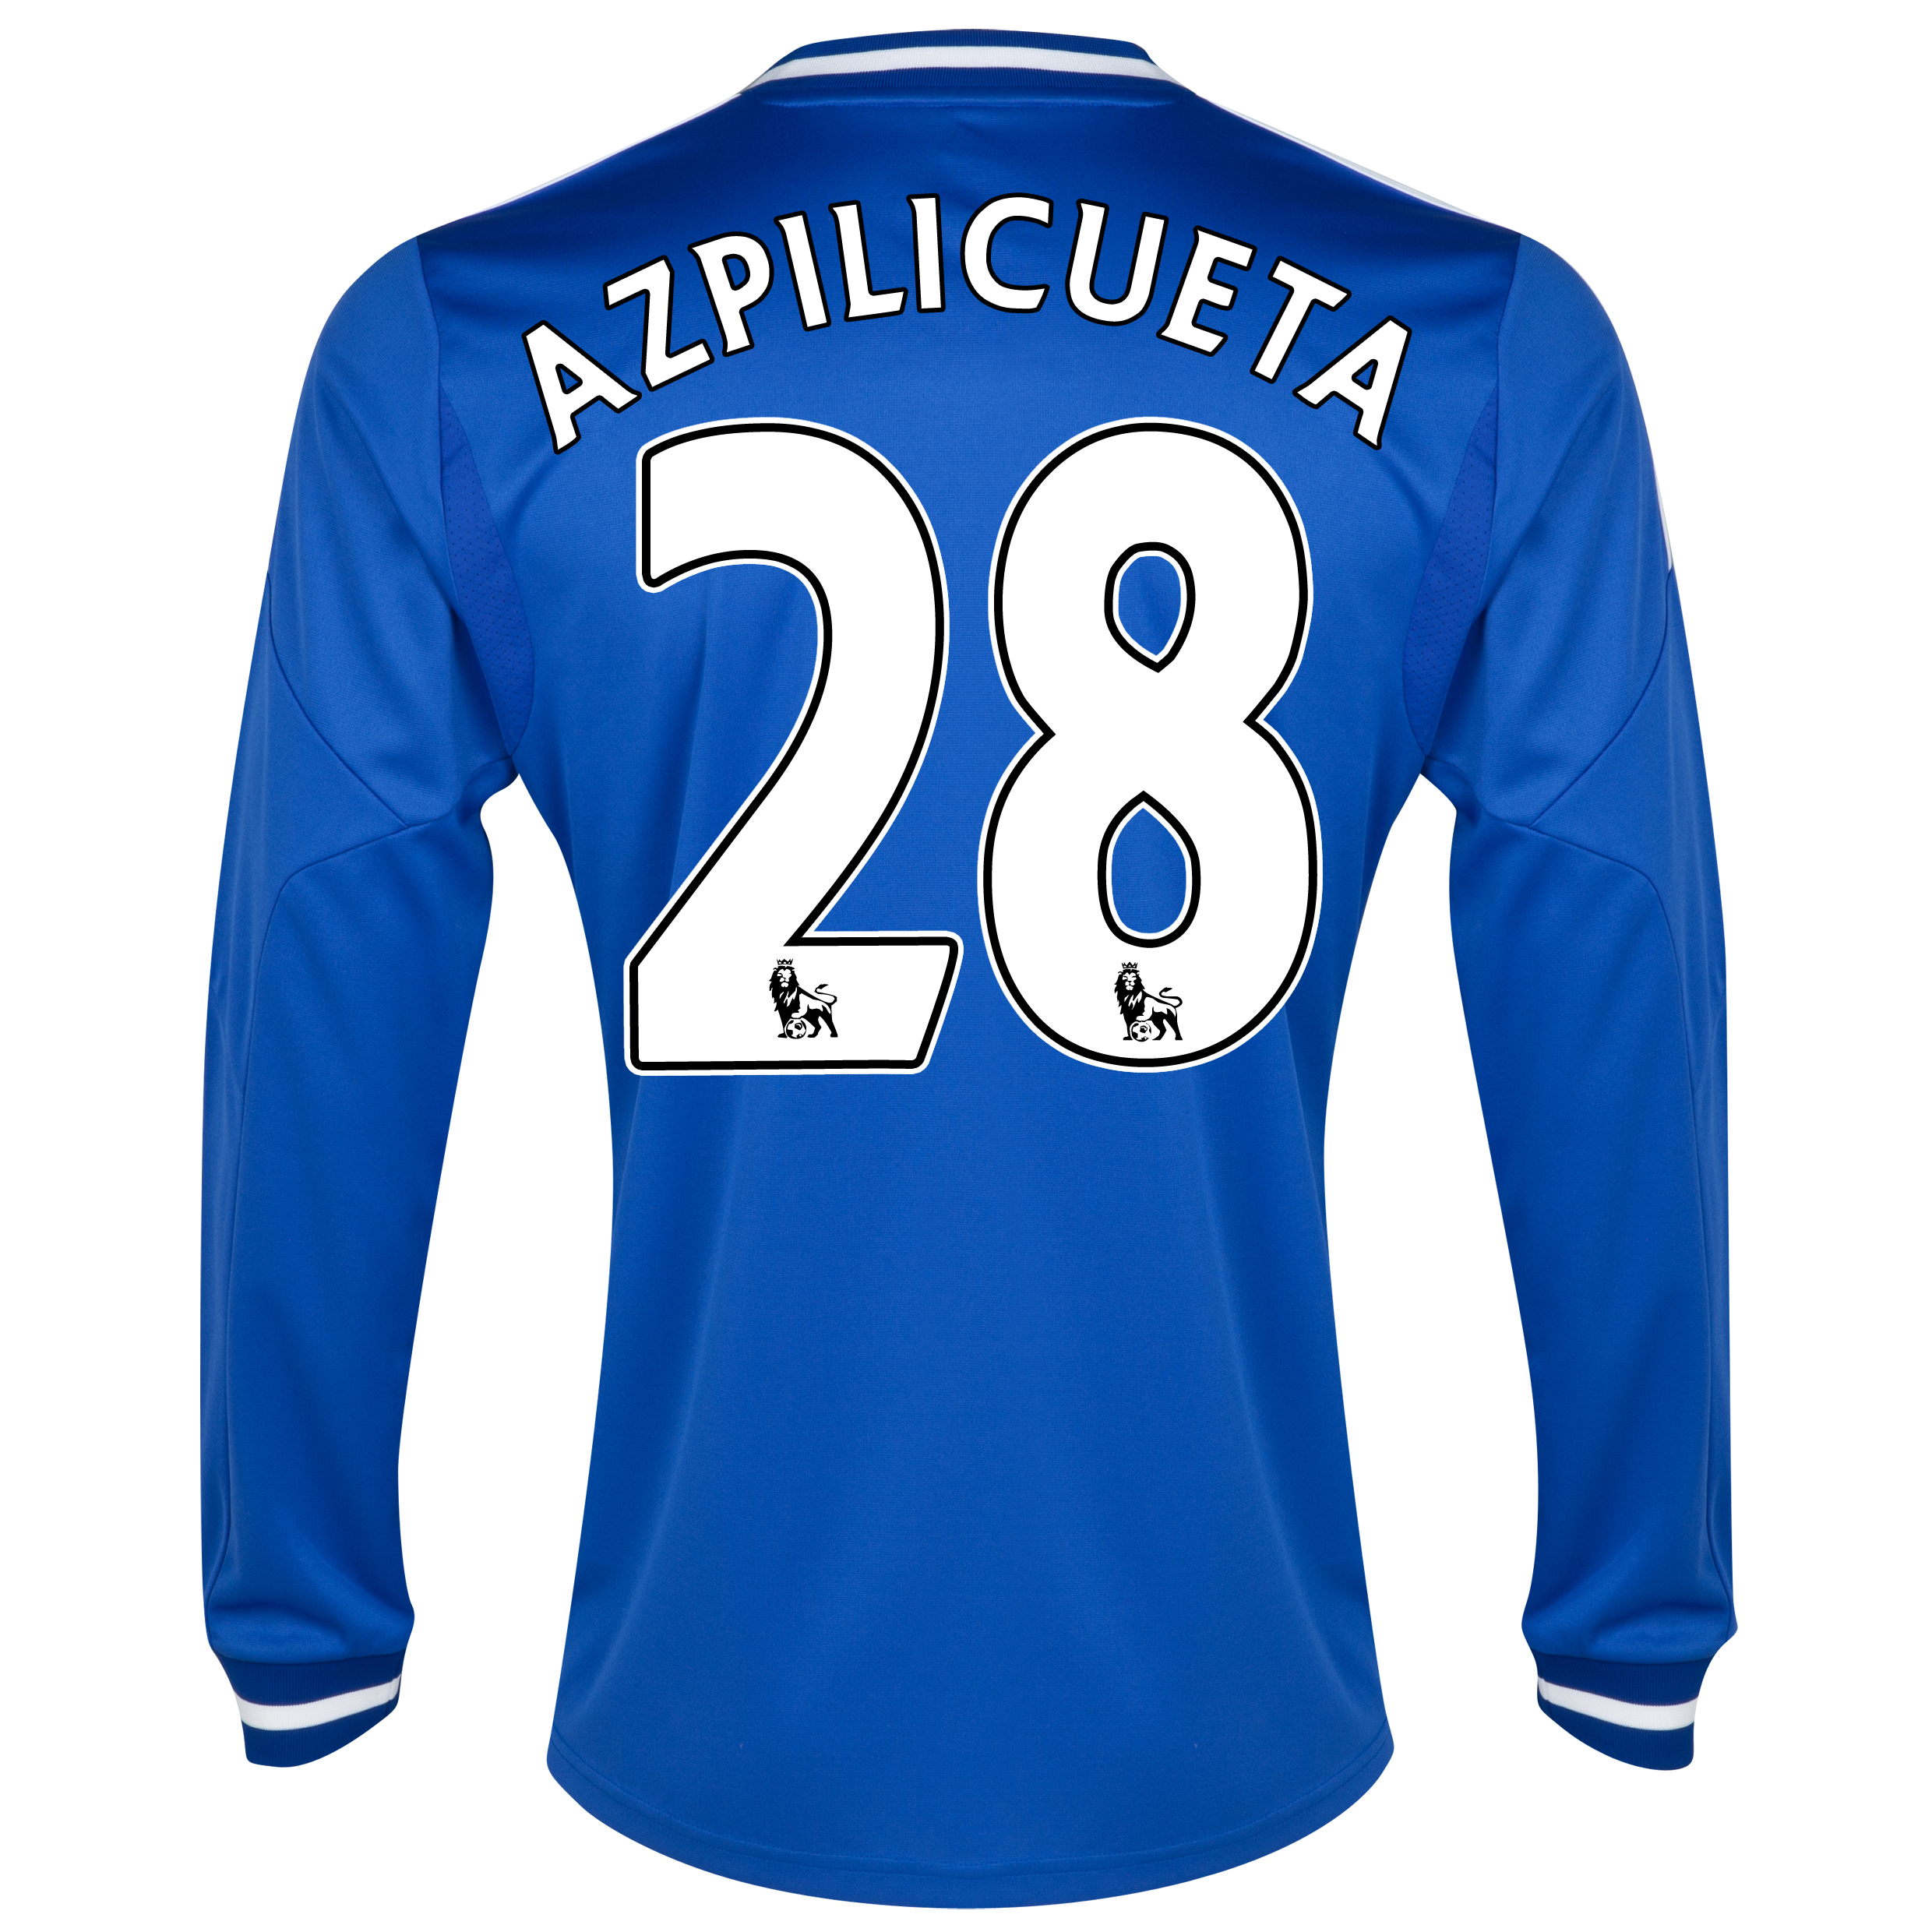 Chelsea Home Shirt 2013/14 - Long Sleeve with Azpilicueta 28 printing